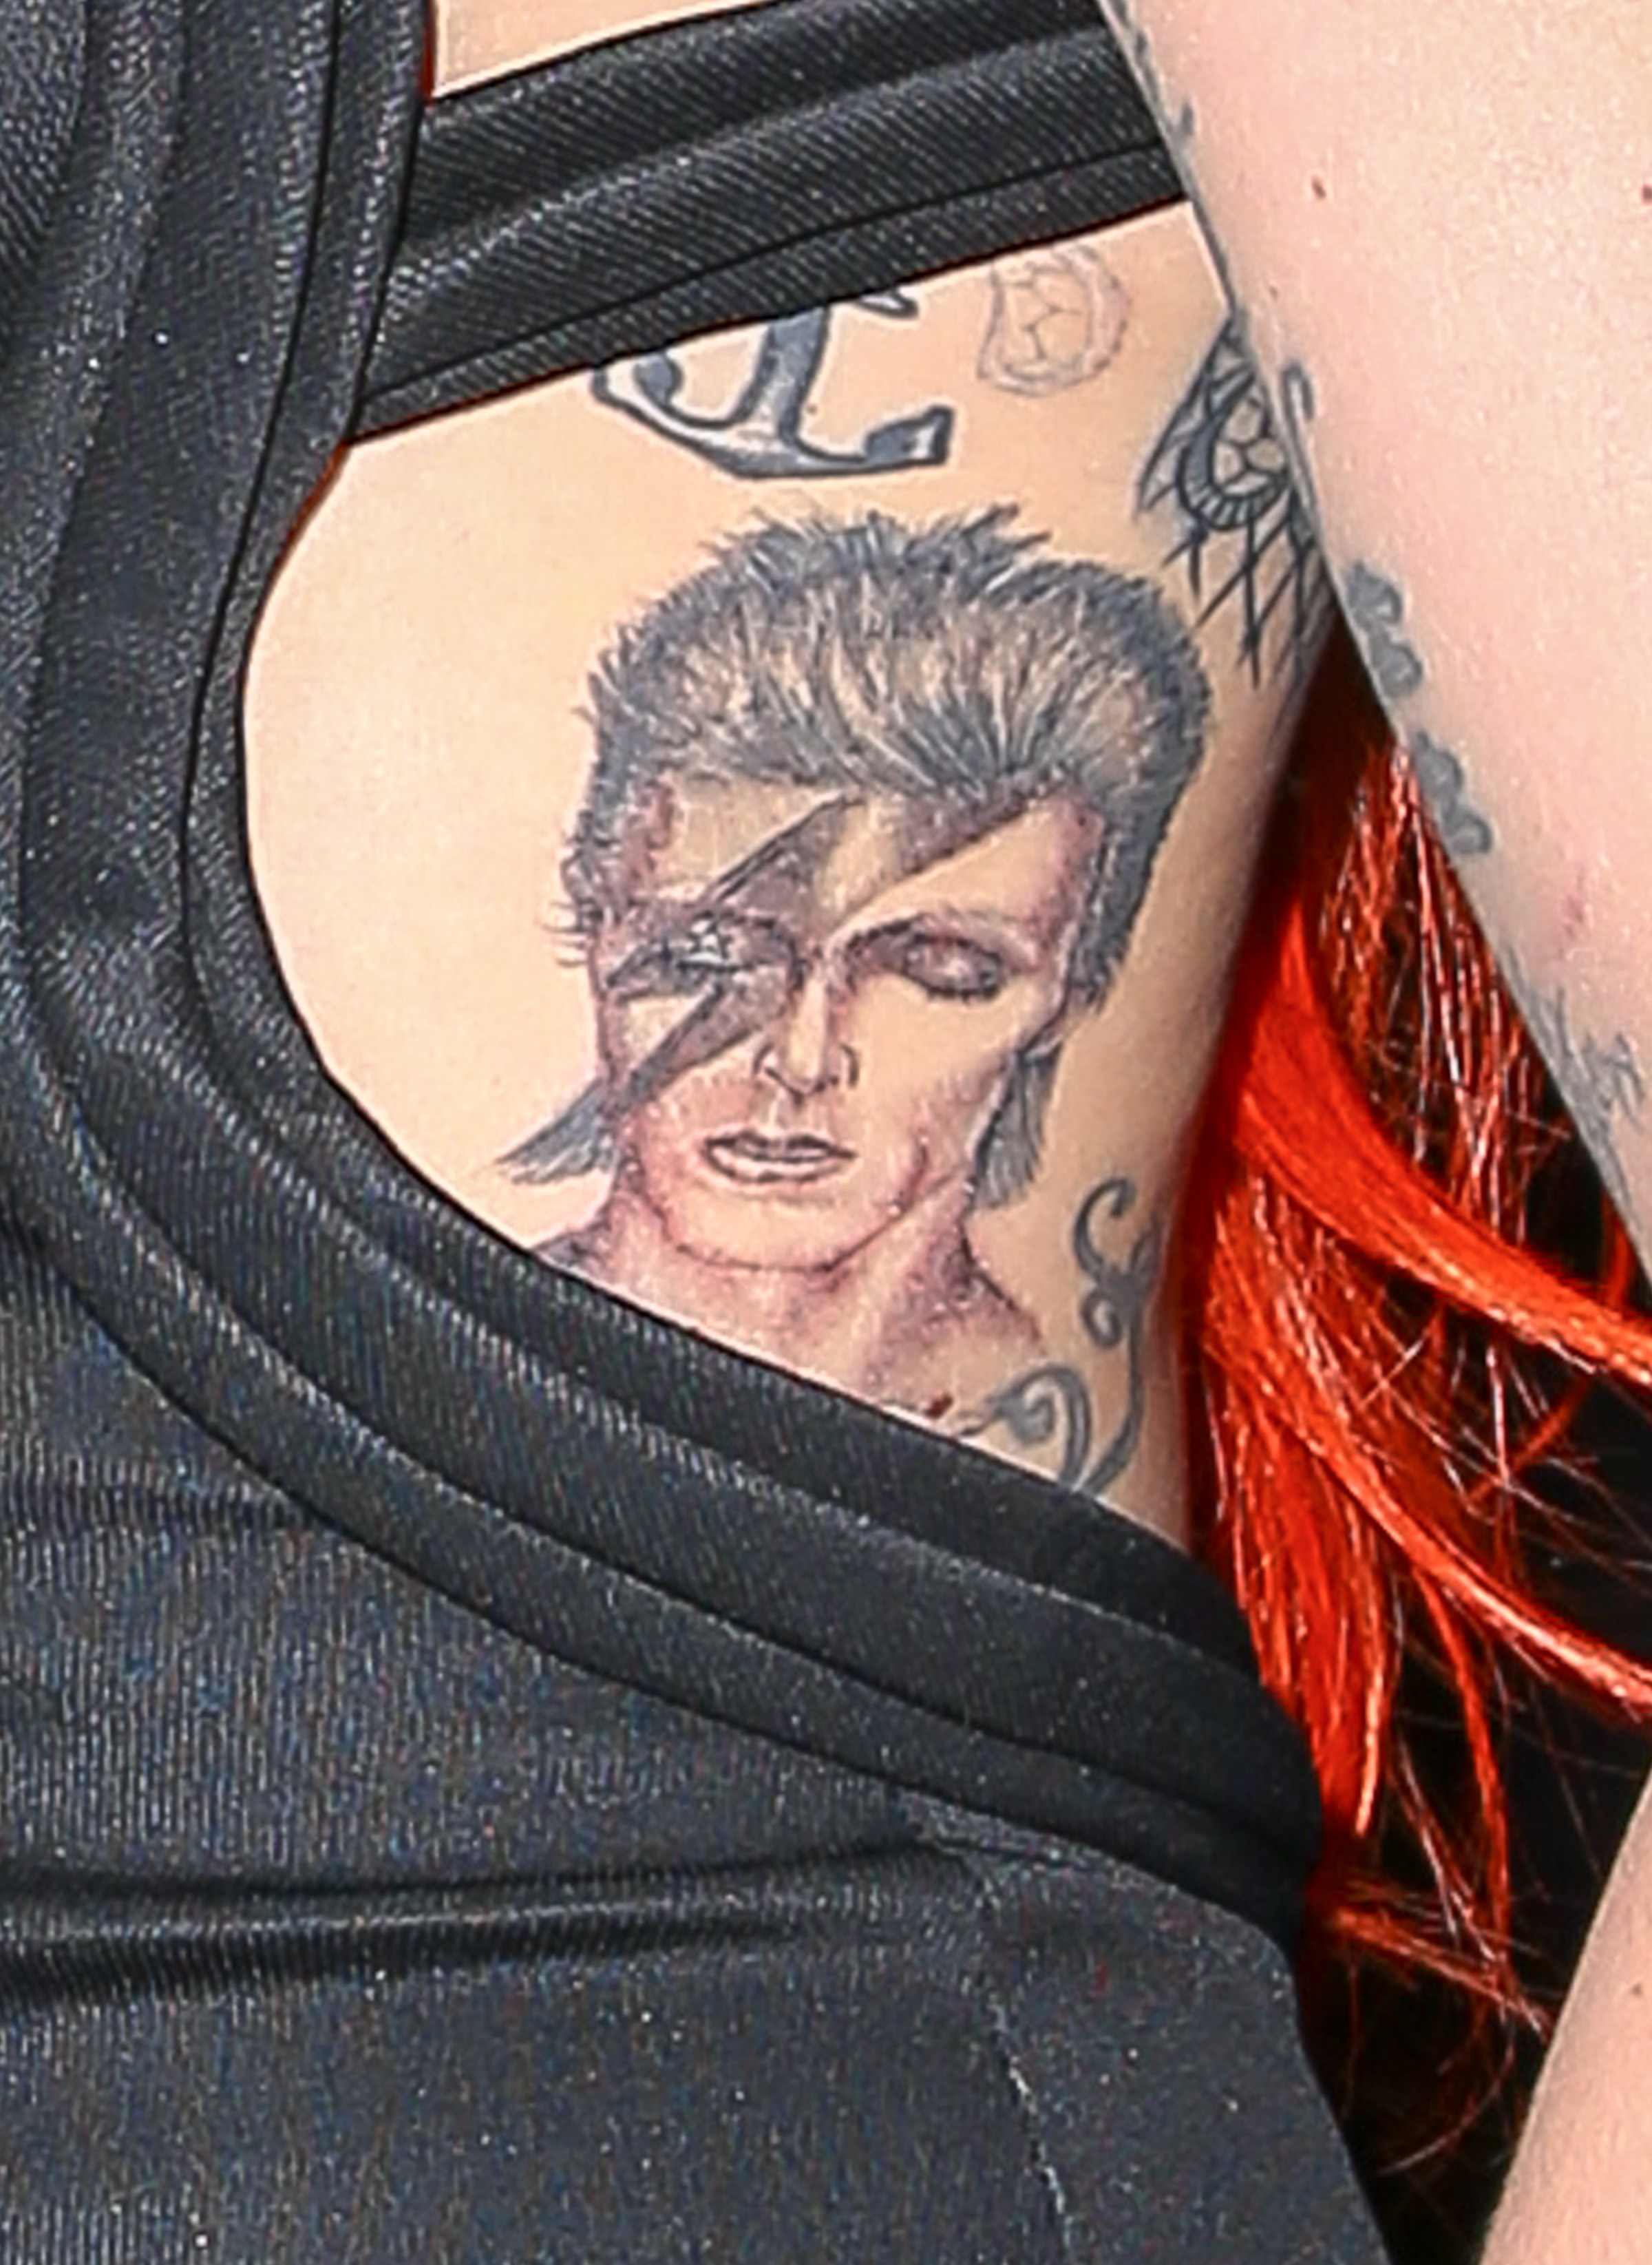 Lady gaga celebrity tattoos of 2016 gallery for Bowie tattoo ideas